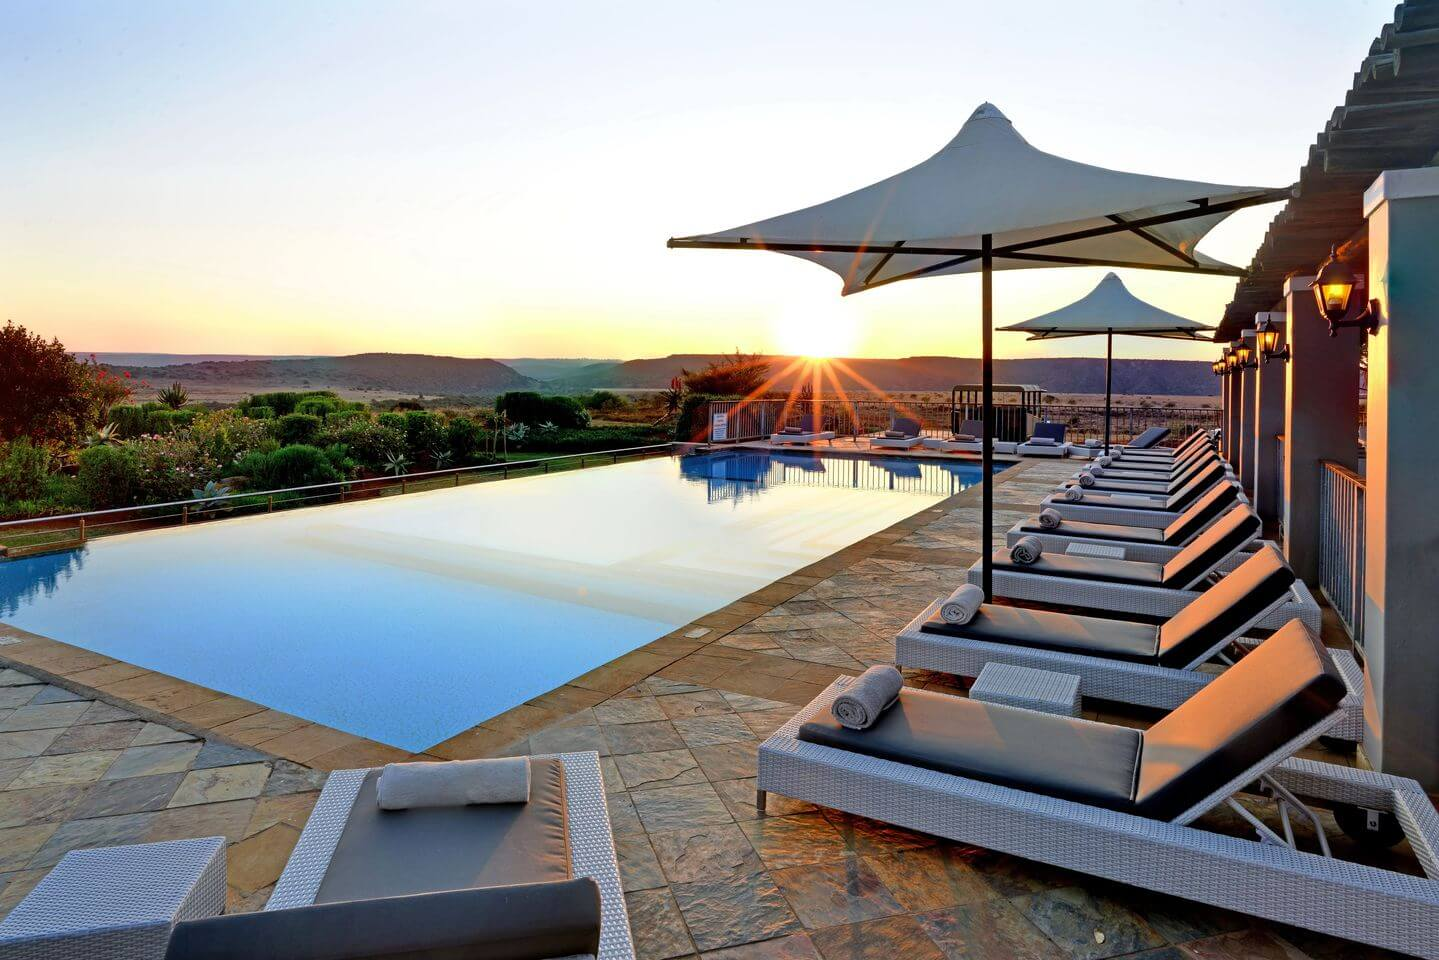 Riverdene-Family-Lodge-pool-sunrise